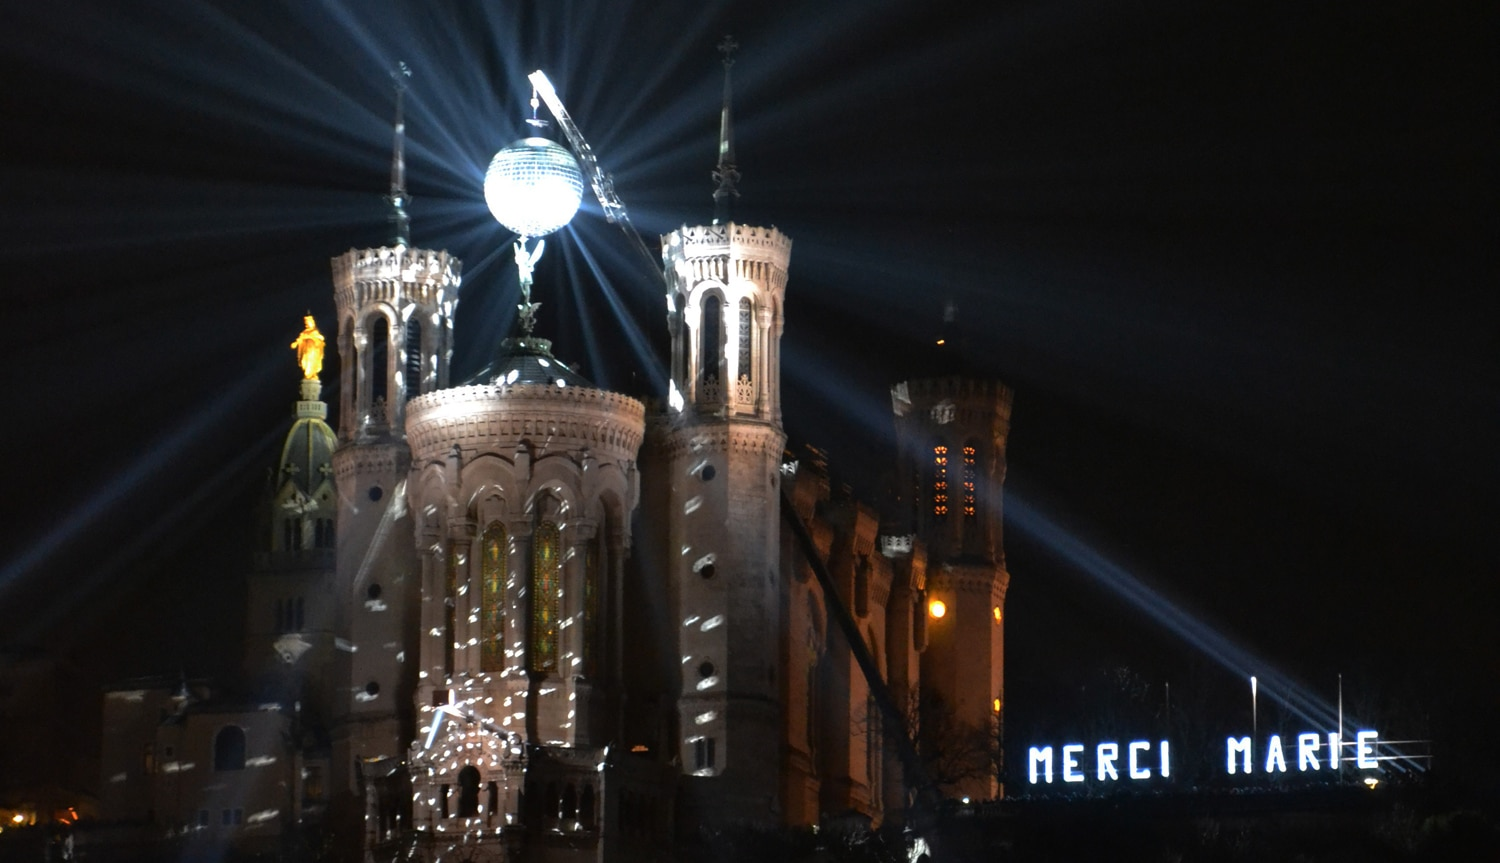 disco ball over Fourvière cathedral - Lyon Festival of Lights